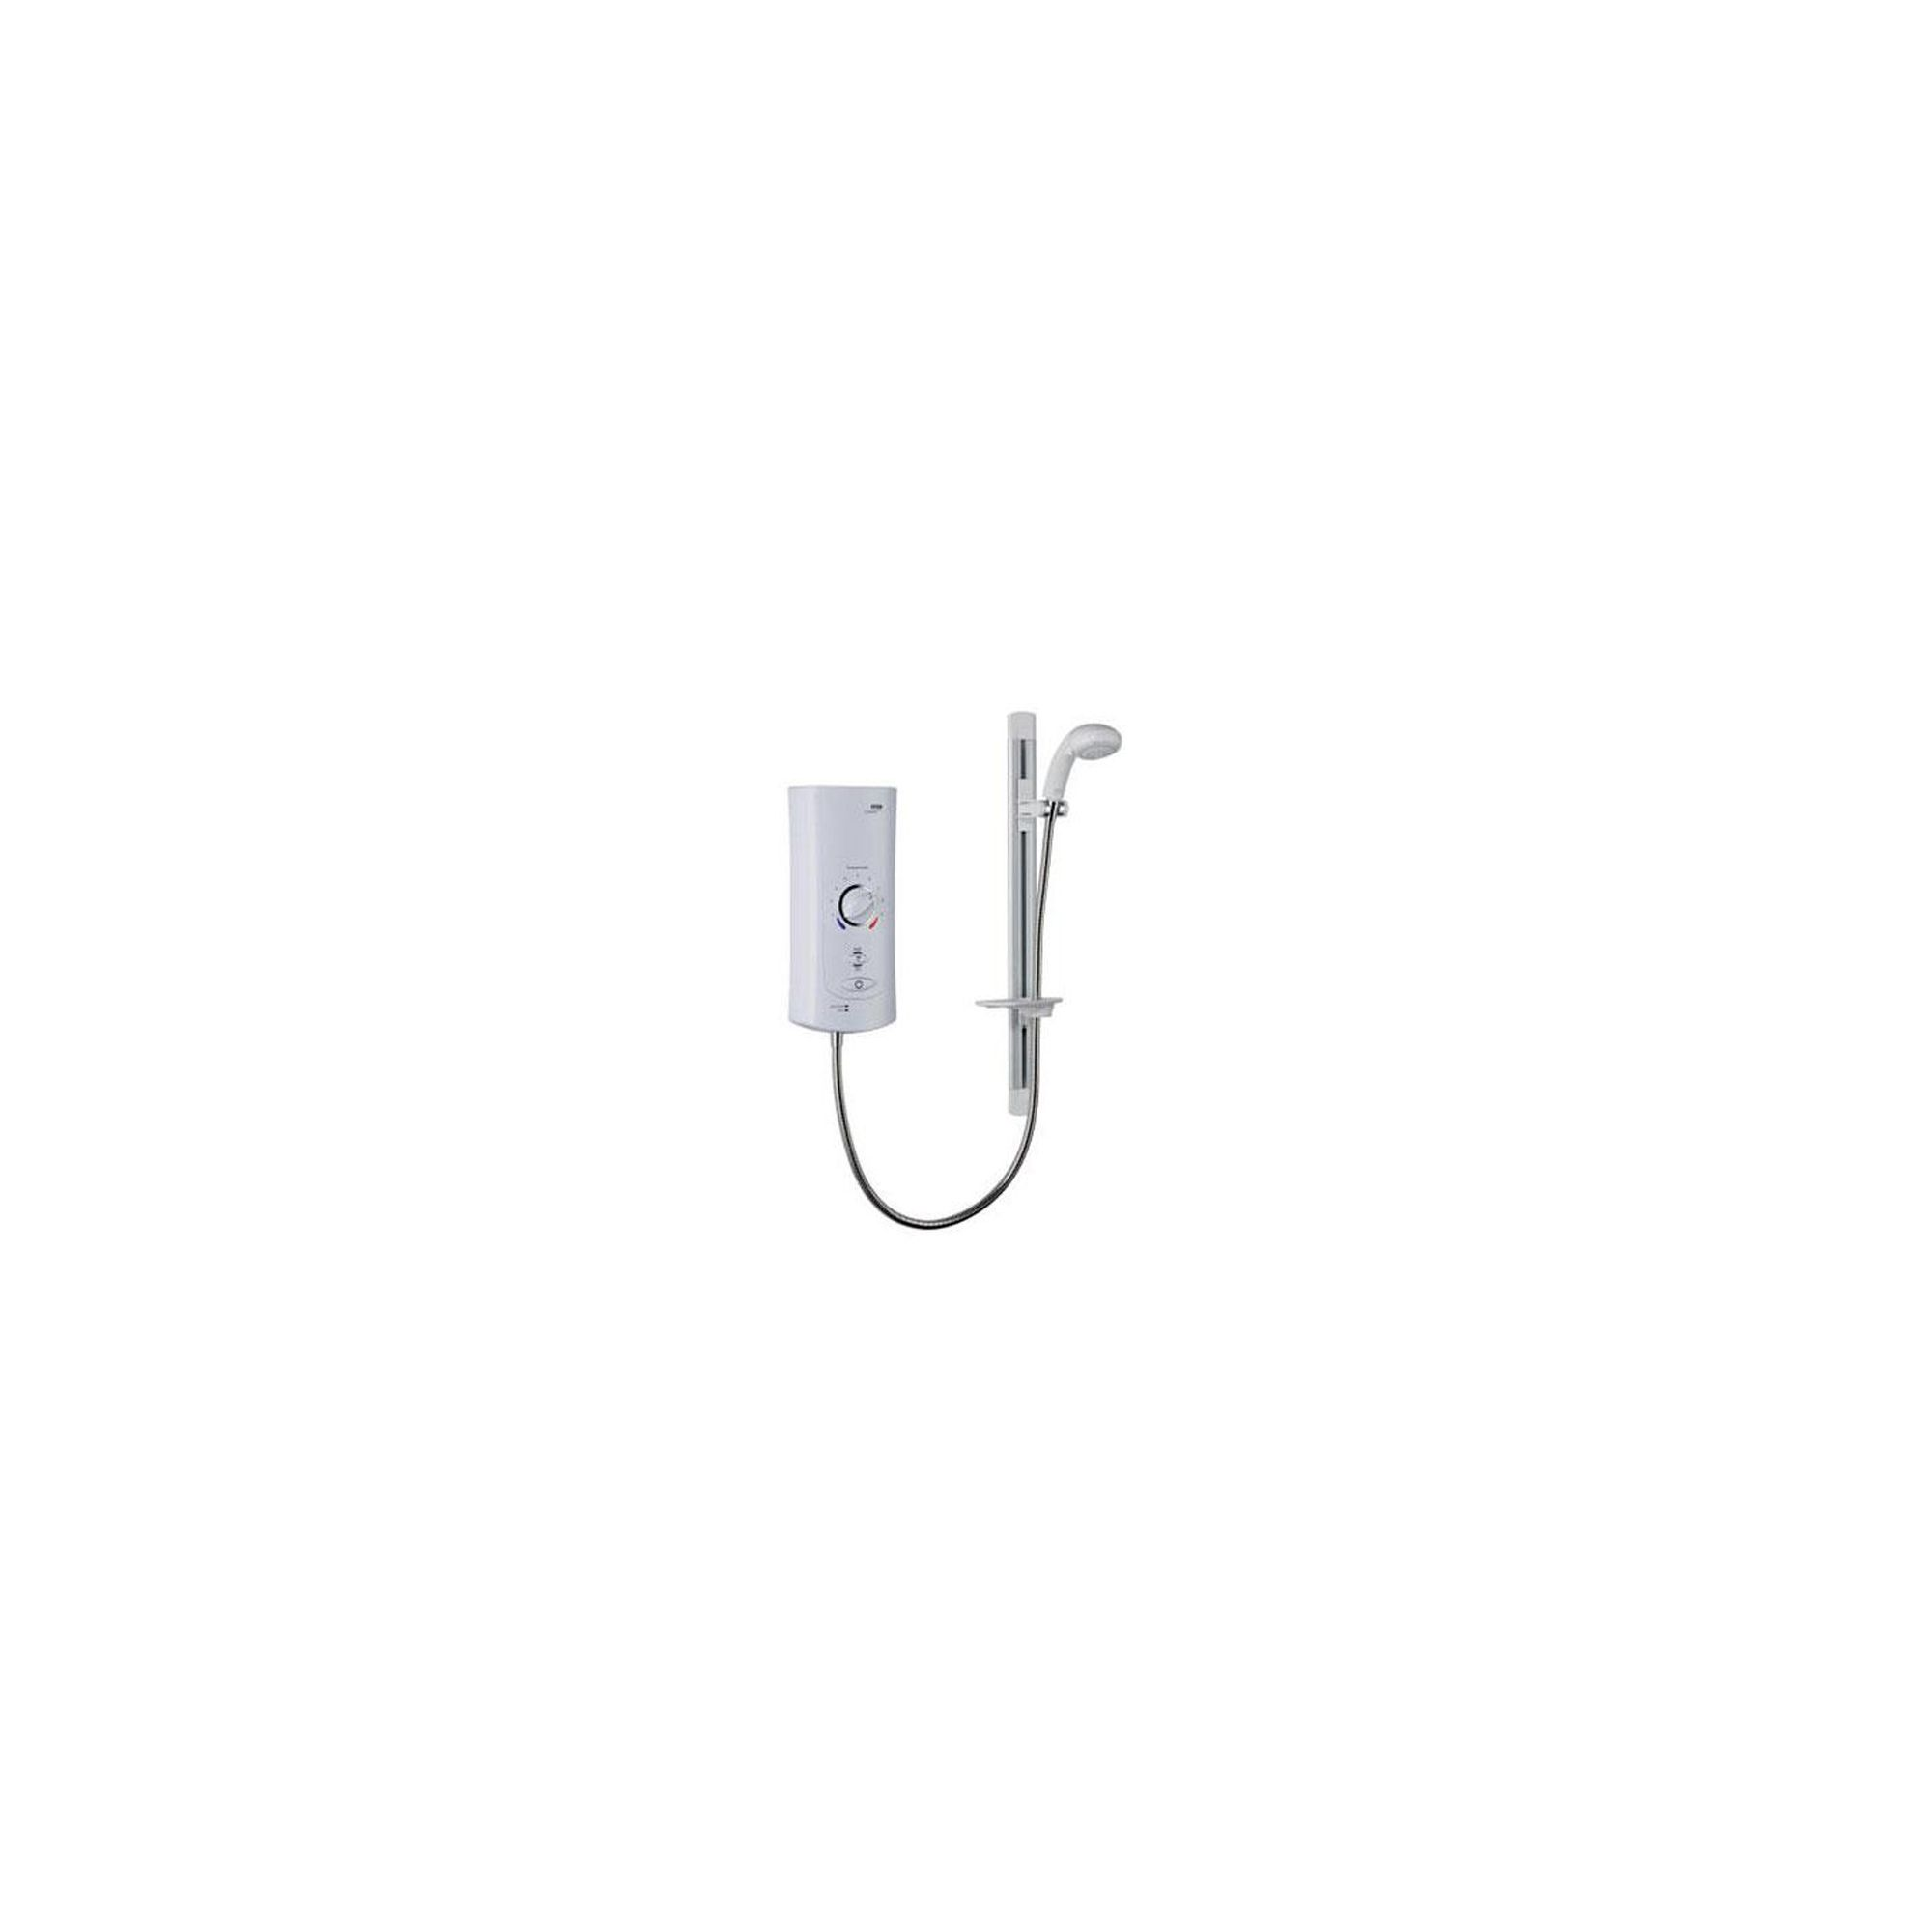 Mira Advance ATL 9.8 kW Electric Shower, 4 Spray Handset, White/Chrome at Tesco Direct